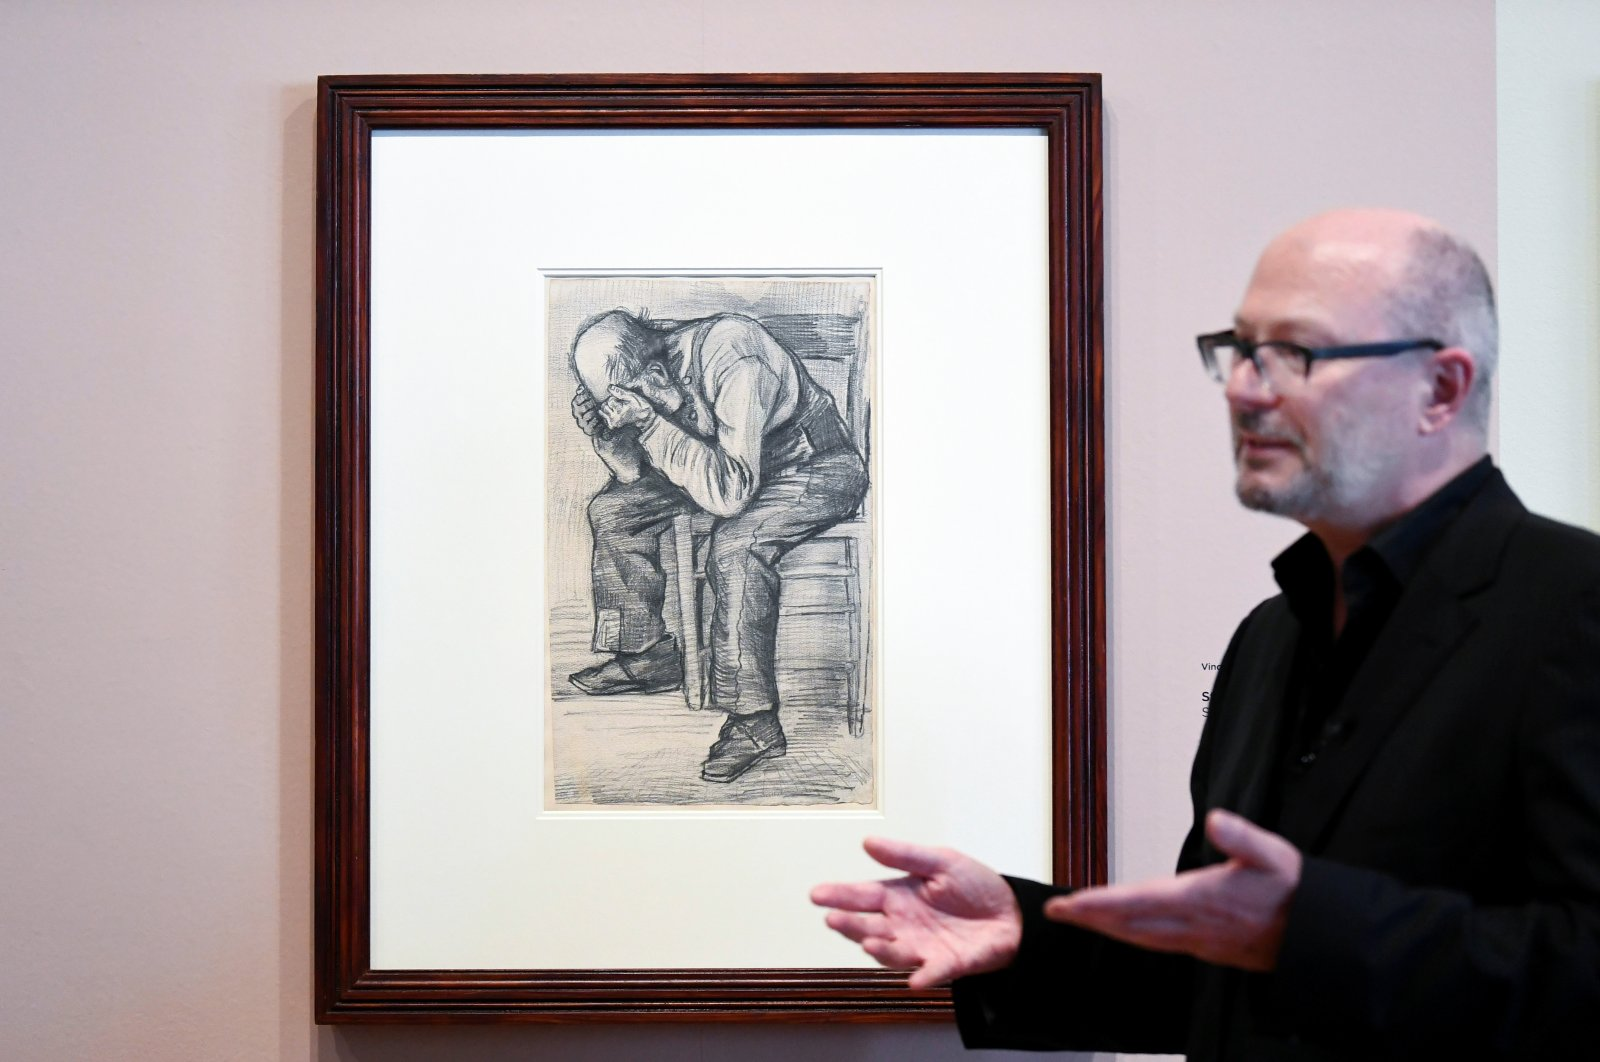 """Senior researcher Teio Meenendorp unveils the unseen artwork by Vincent van Gogh that is named """"Worn Out"""" at The Van Gogh Museum in Amsterdam, Netherlands, Sept. 16, 2021. (Reuters Photo)"""